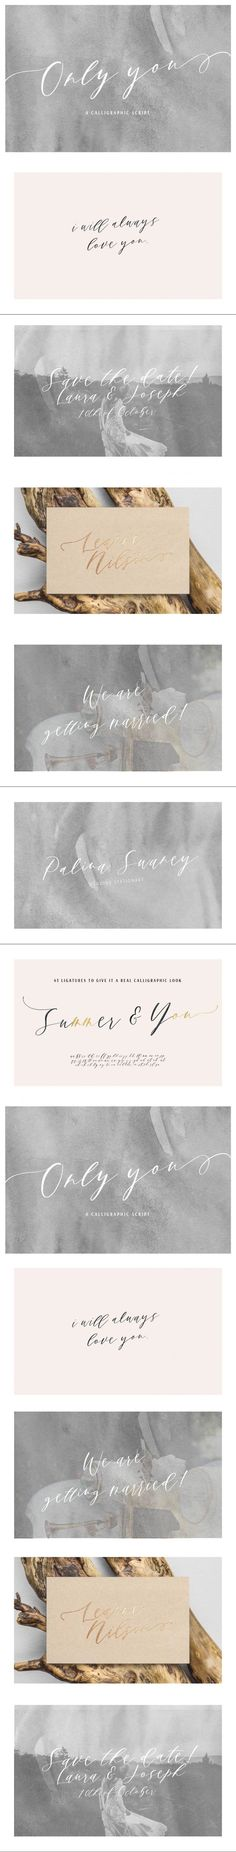 Only You | A Calligraphic Script #font #calligraphic #romantic #typeface #swashes #branding #WeddingDesign #feminine #ModernFont #trendy #logofonts #FontDesign #CalligraphicFont #handwritingfonts #calligraphy #playful #branding #FontDesign #otf Wedding Fonts, Handwriting Fonts, Script, Uppercase And Lowercase Letters, Modern Fonts, Calligraphy Fonts, Wedding Invitation Cards, Lower Case Letters, Quote Prints